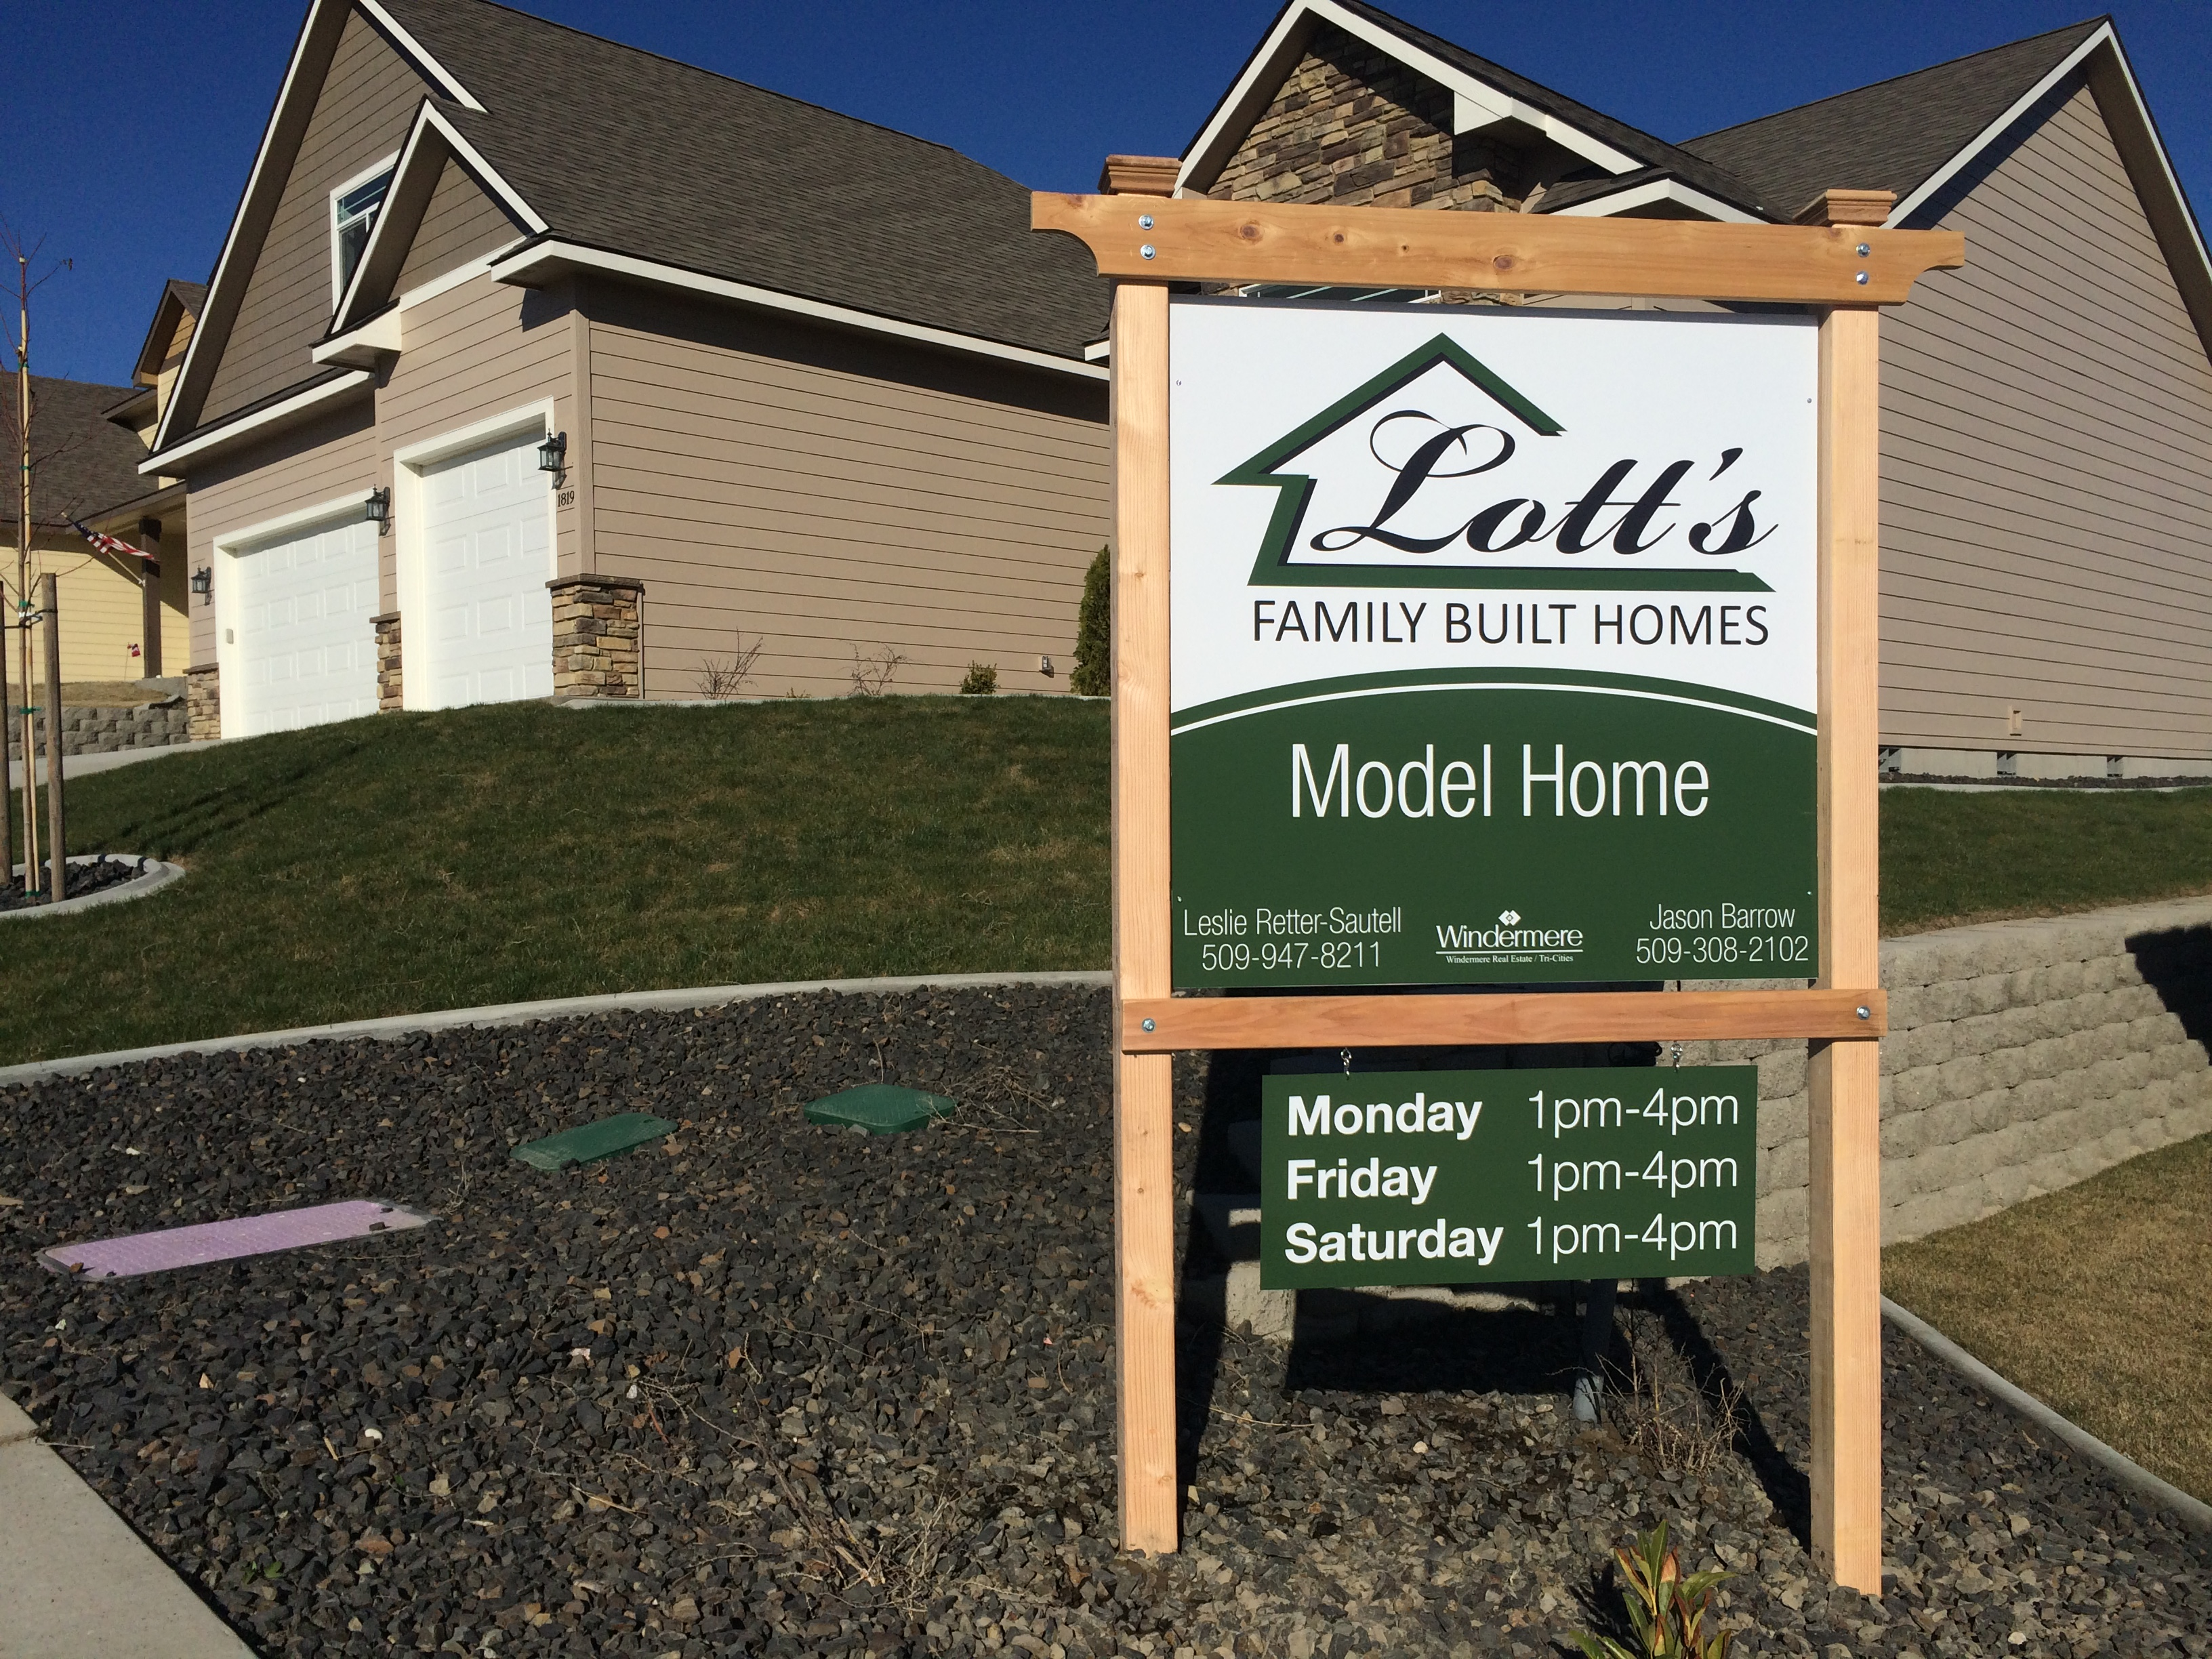 Lotts Model Home Sign